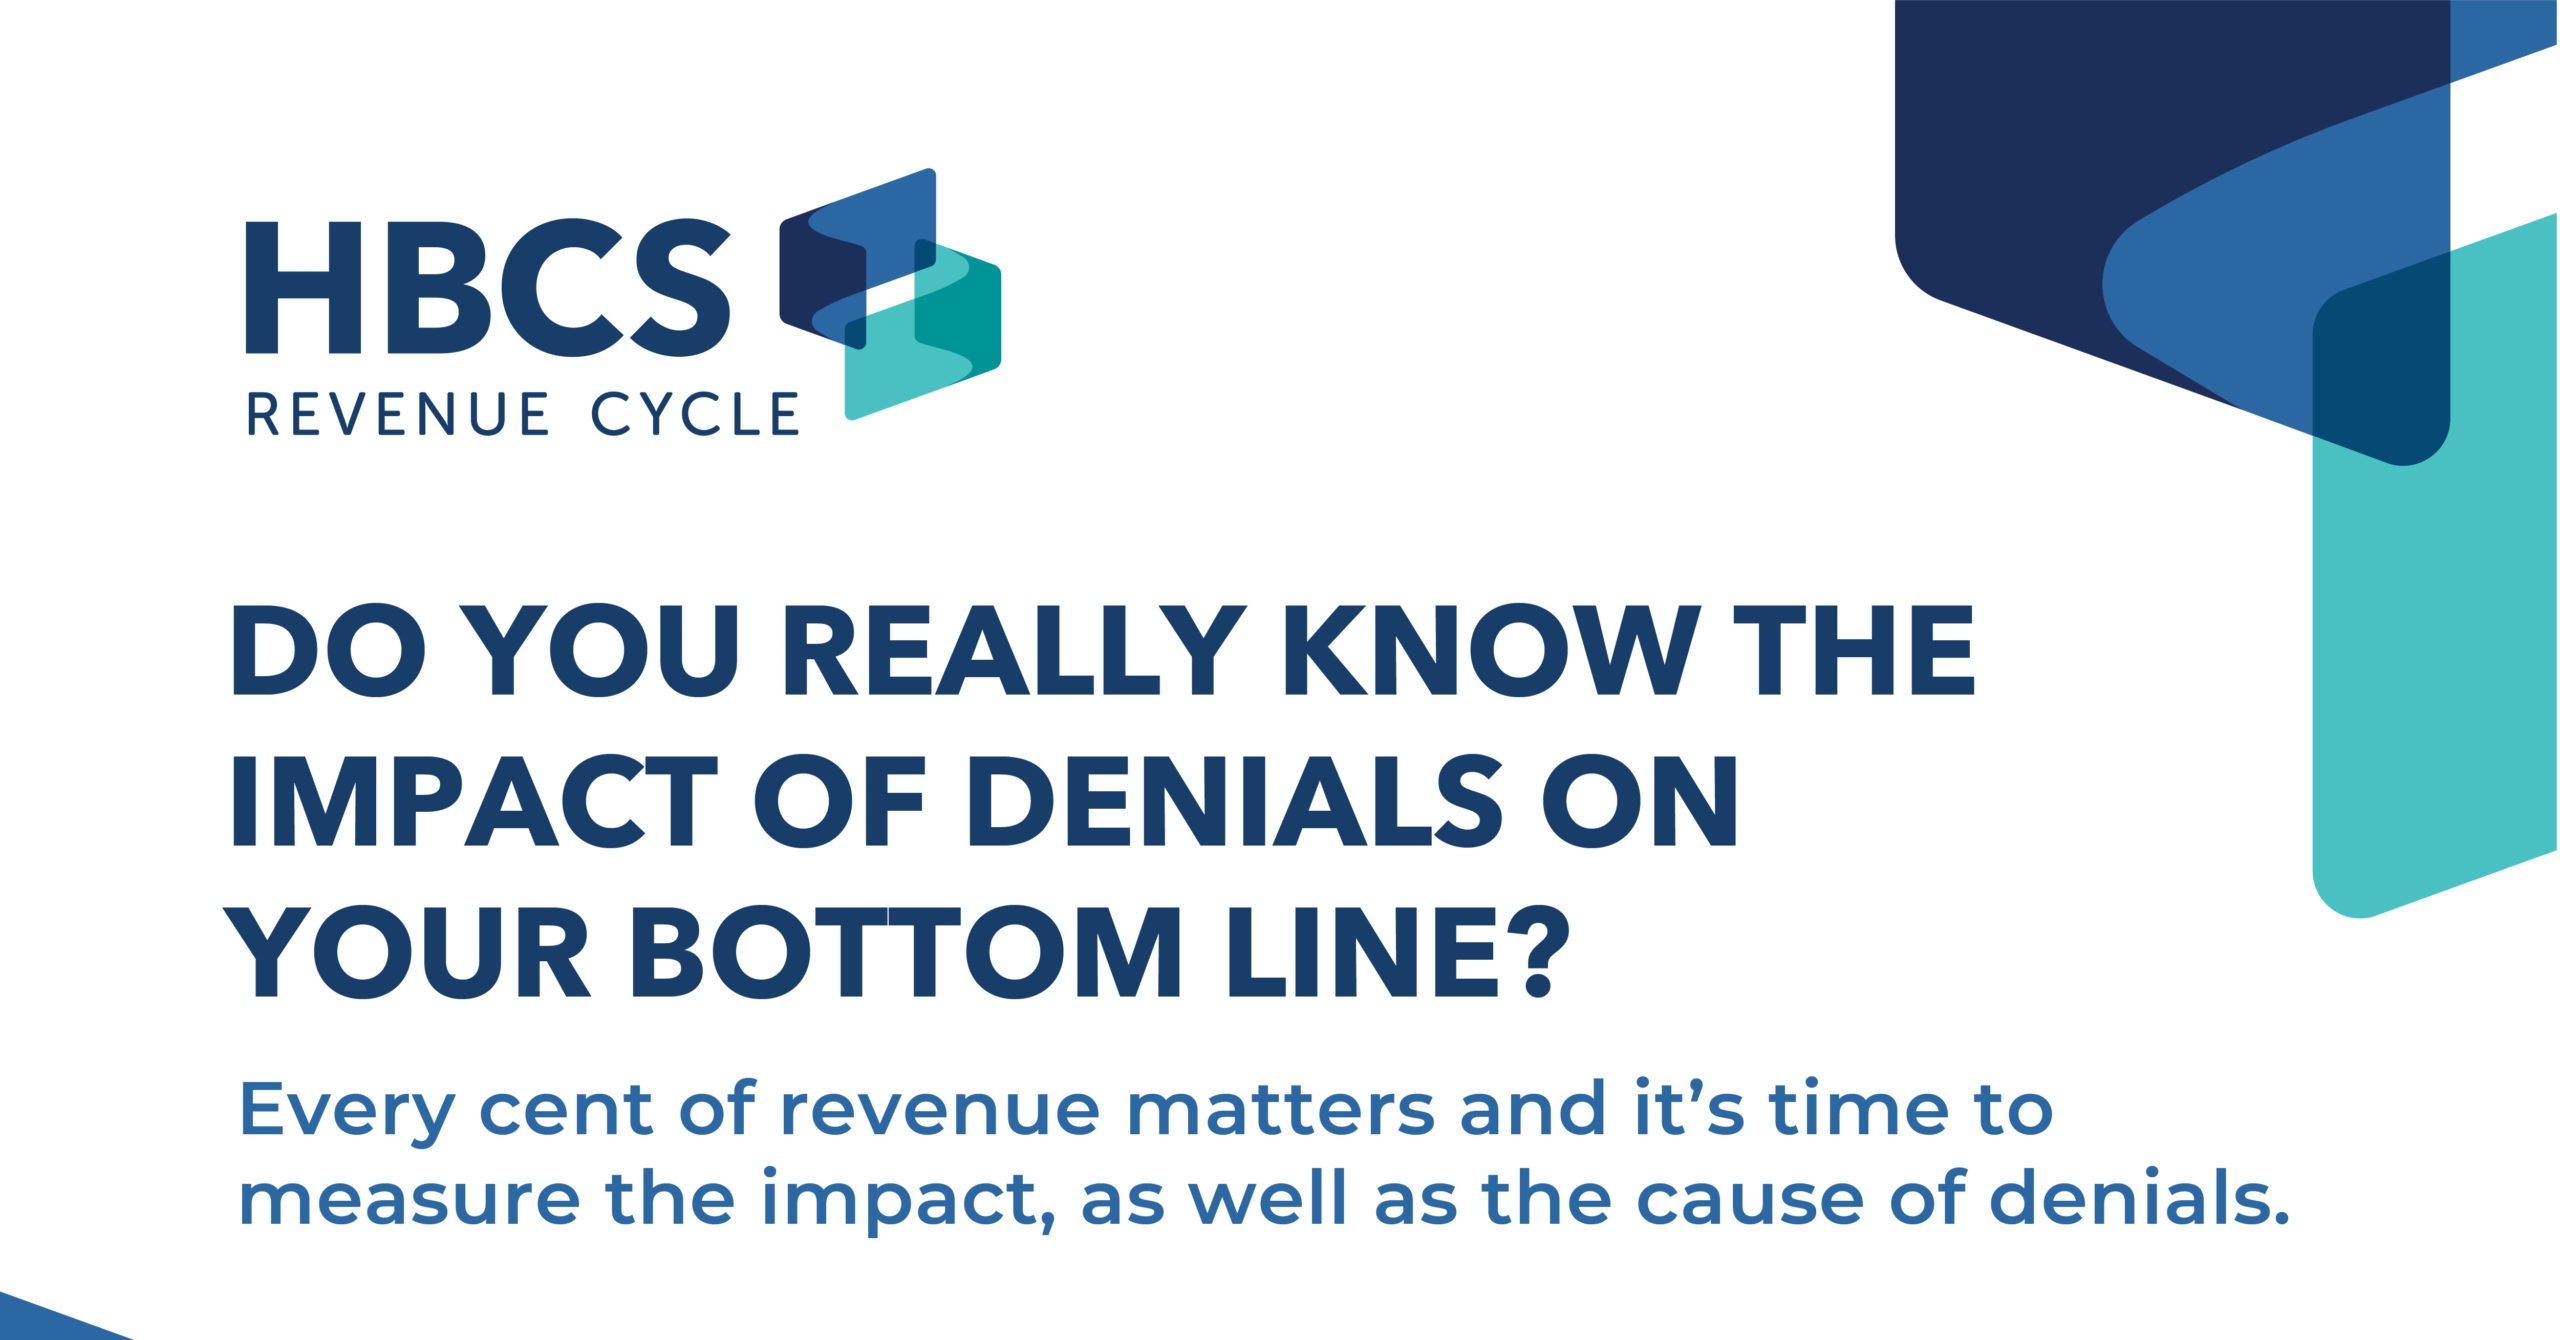 Do You Really Know the Impact of Denials on Your Bottom Line?